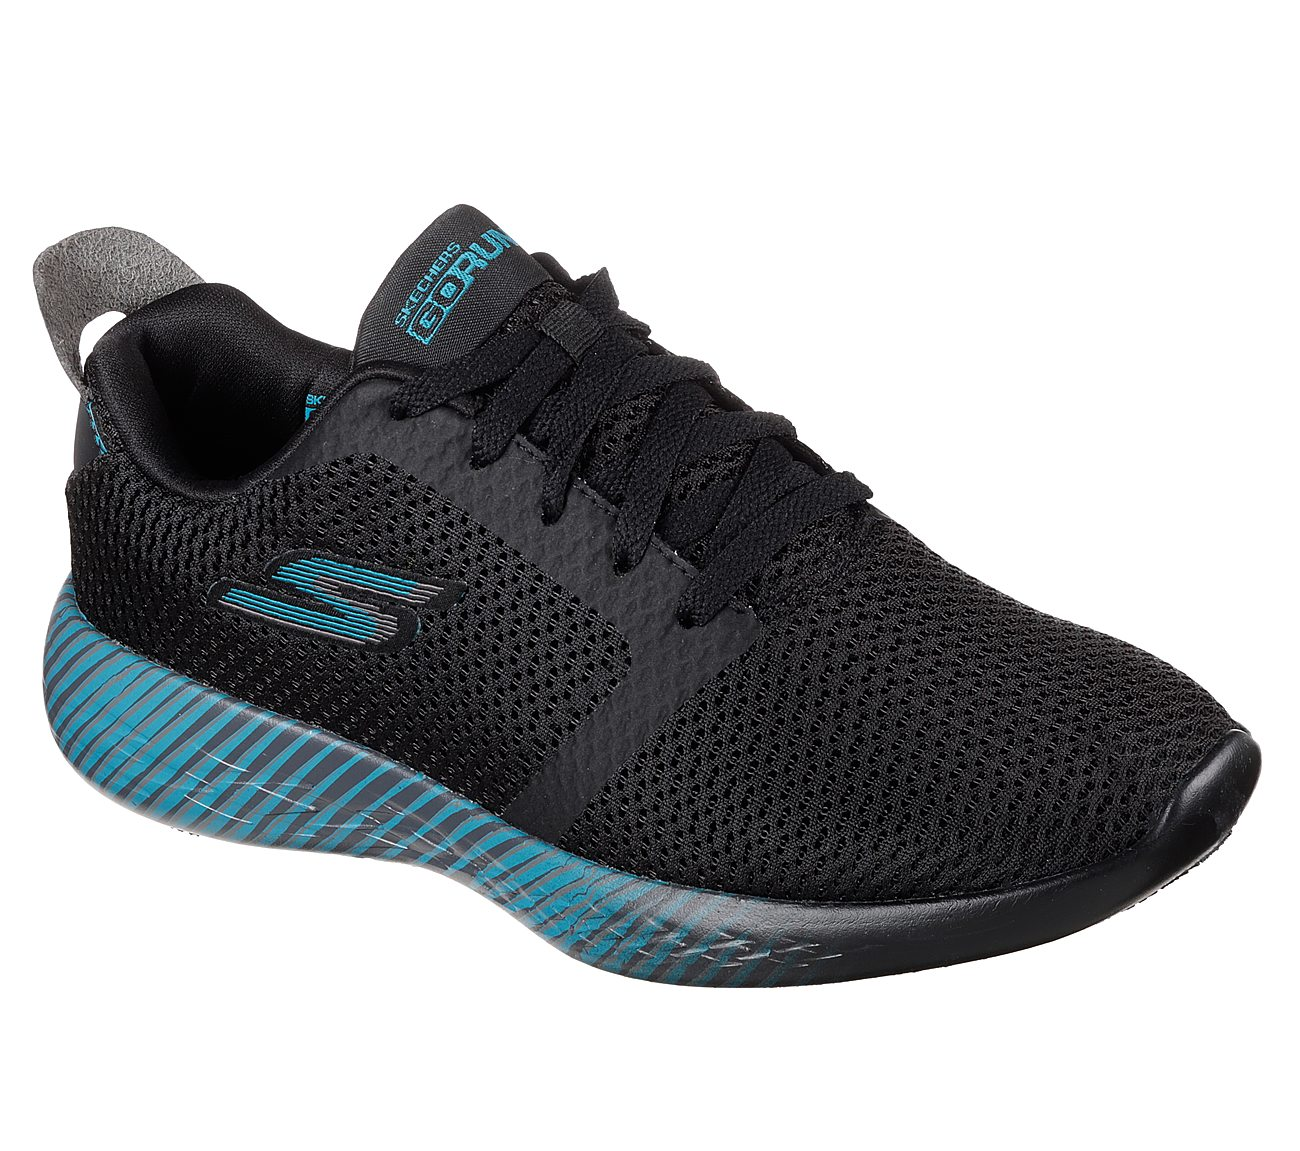 Buy SKECHERS Skechers GOrun 600 Spectra Skechers Performance Schuhes Schuhes Schuhes ... 433625